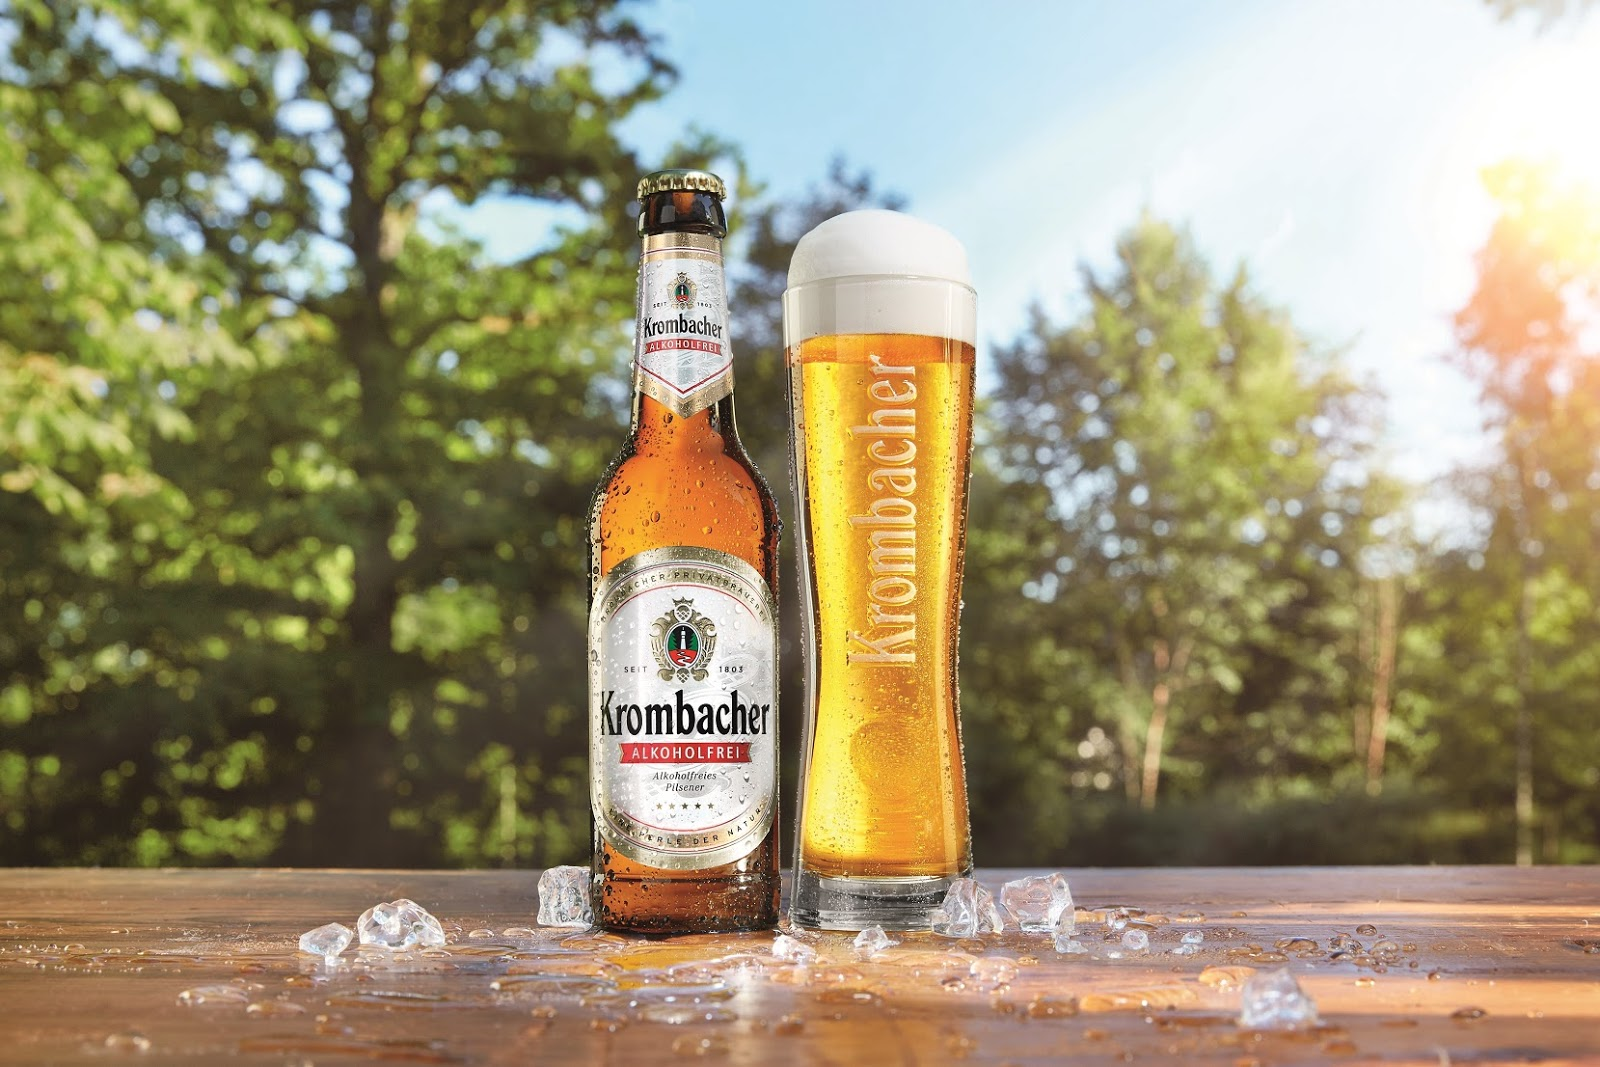 Krombacher beer bottle and filled glass outside in a garden